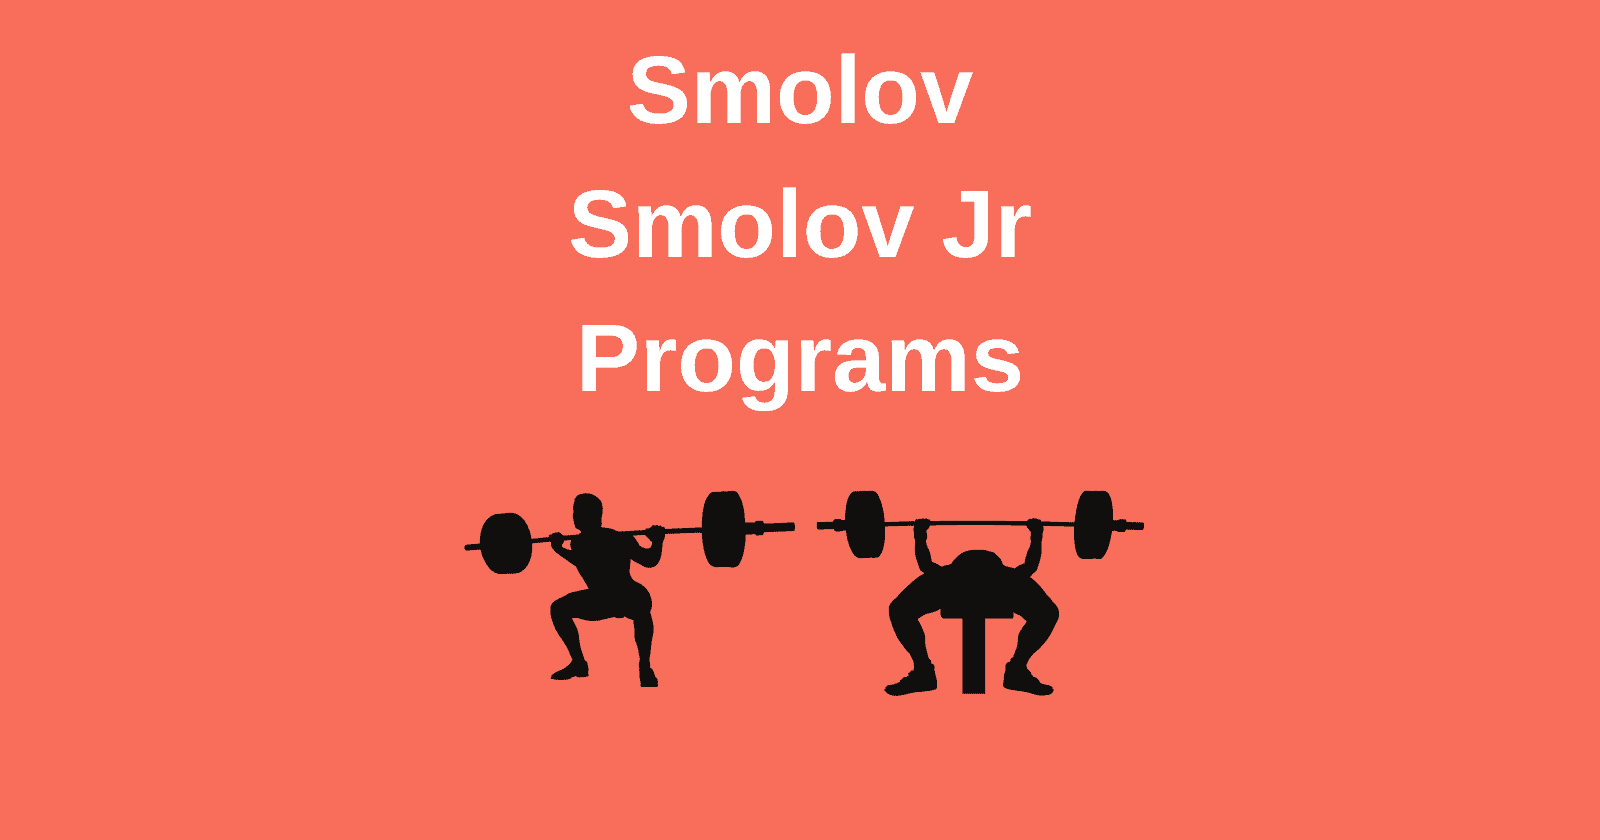 Smolov and Smolov Jr Bench and Squat Programs